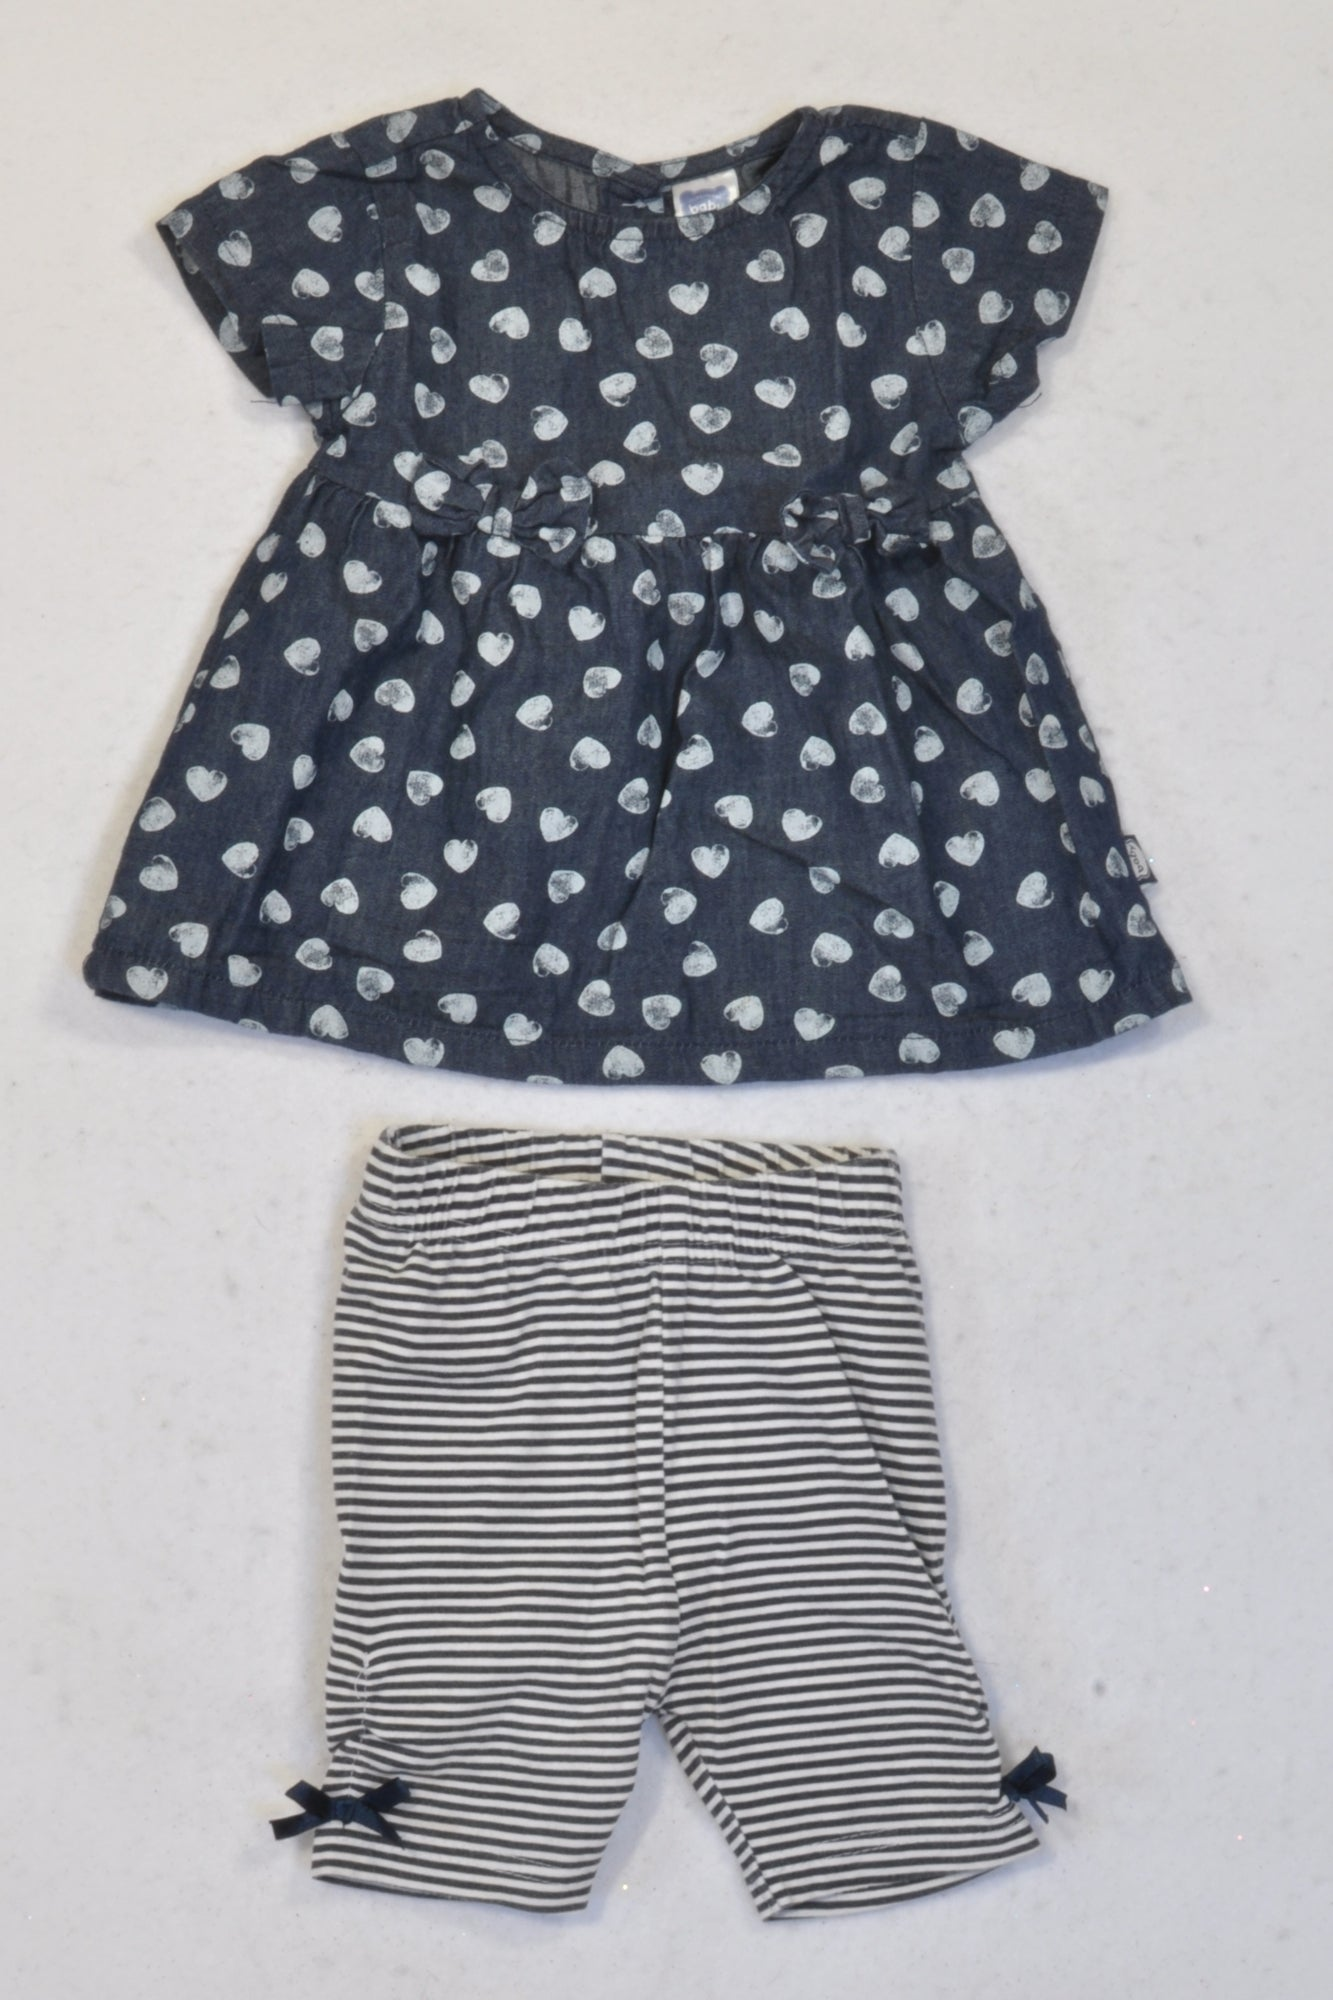 Ackermans Denim Heart Dress & Stripe Leggings Outfit Girls 0-3 months